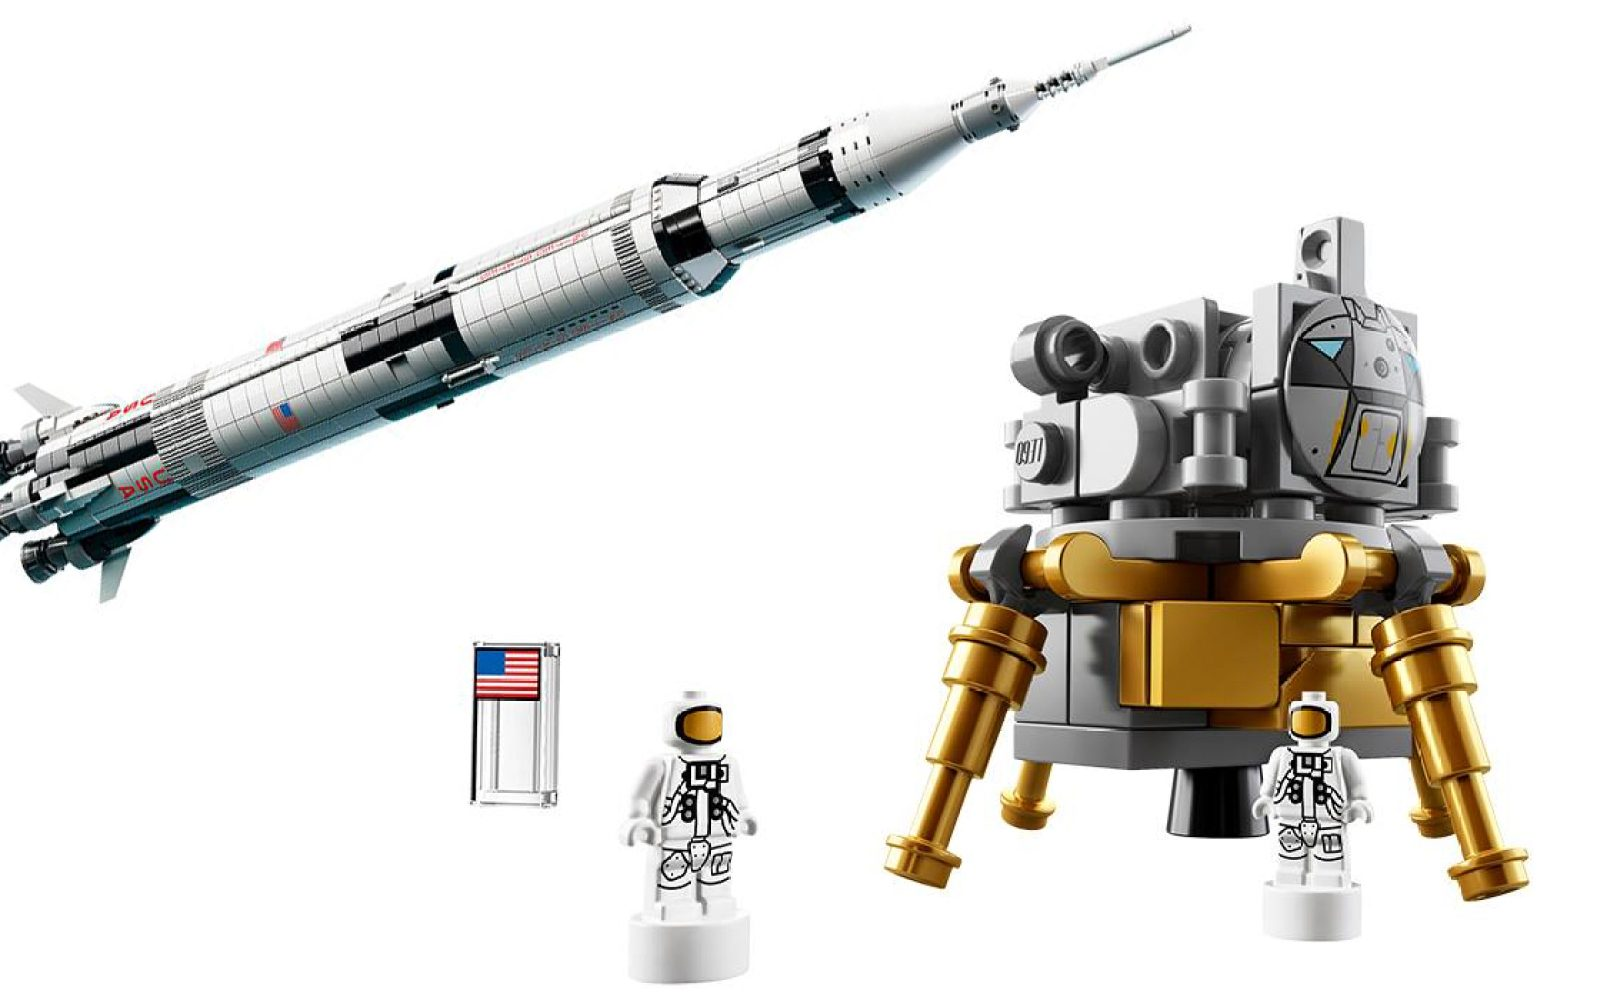 Lego Returns To Space With New 2000 Piece Apollo Saturn V Set